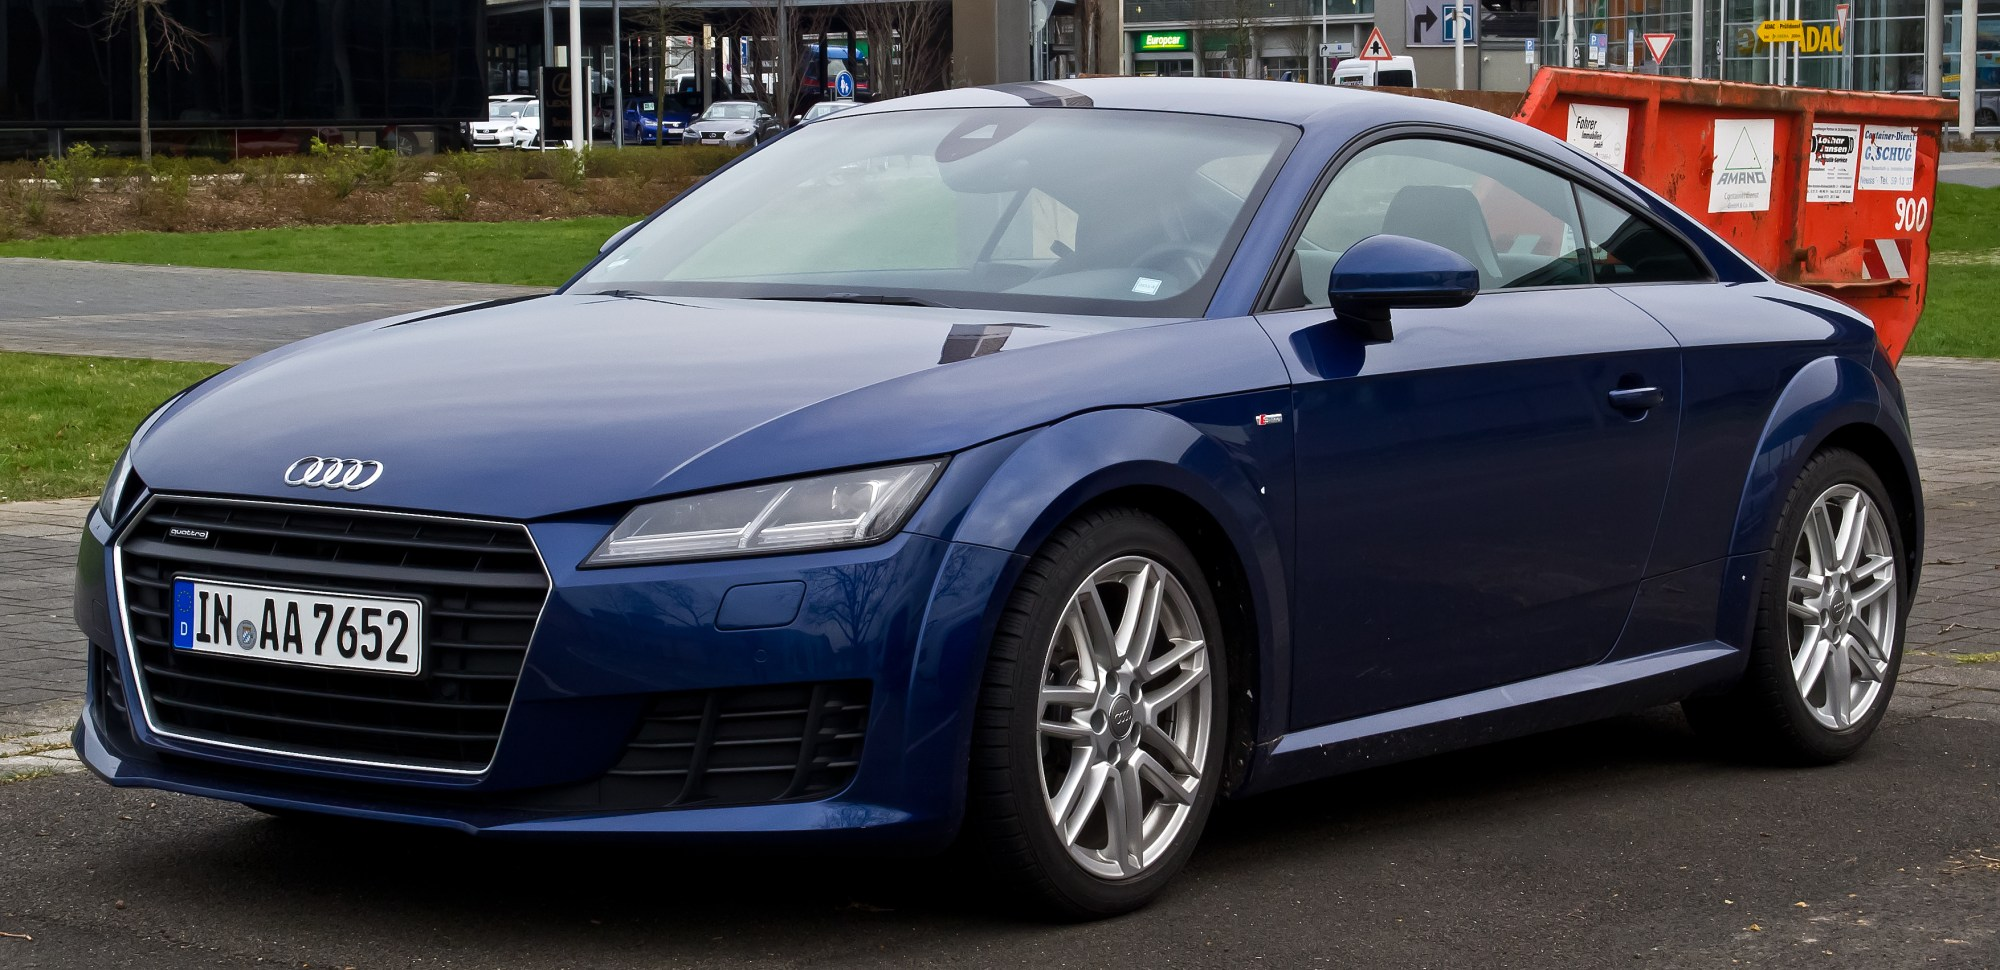 hight resolution of 2000 audi tt body kit